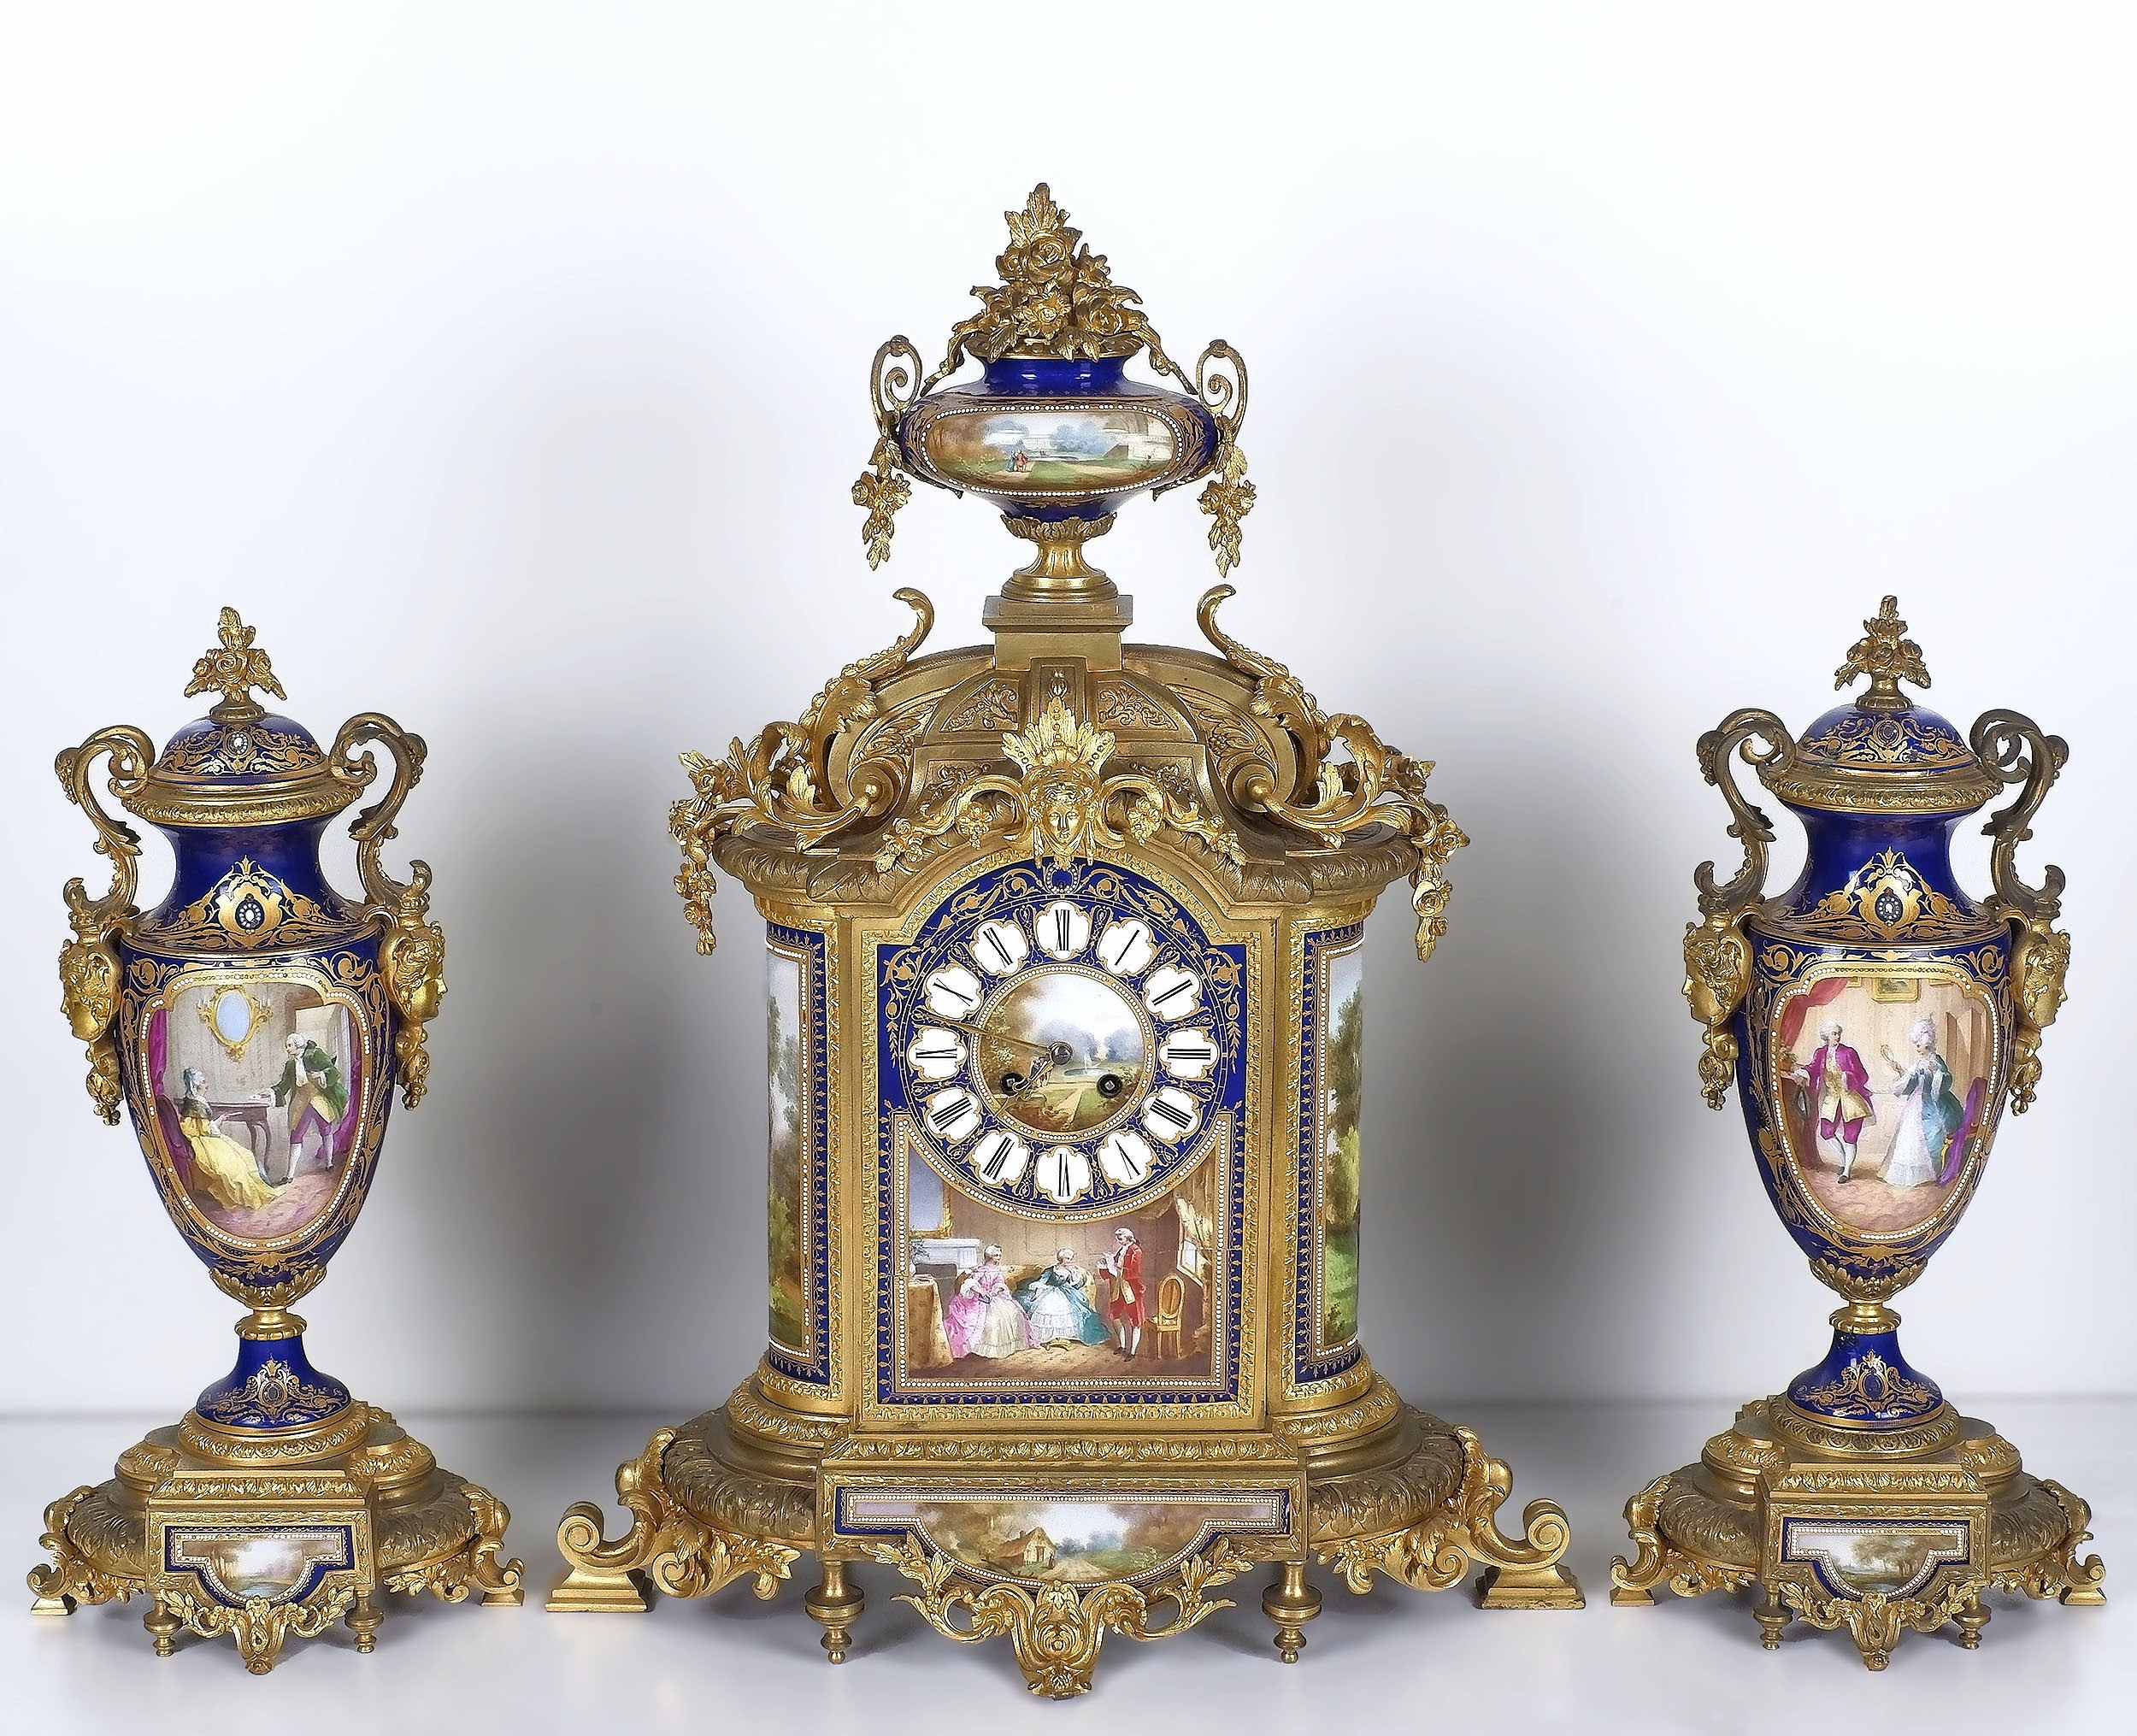 'Impressive French Sevres Style Porcelain and Ormolu Clock Garniture Samuel Marti et Cie Late 19th Century'